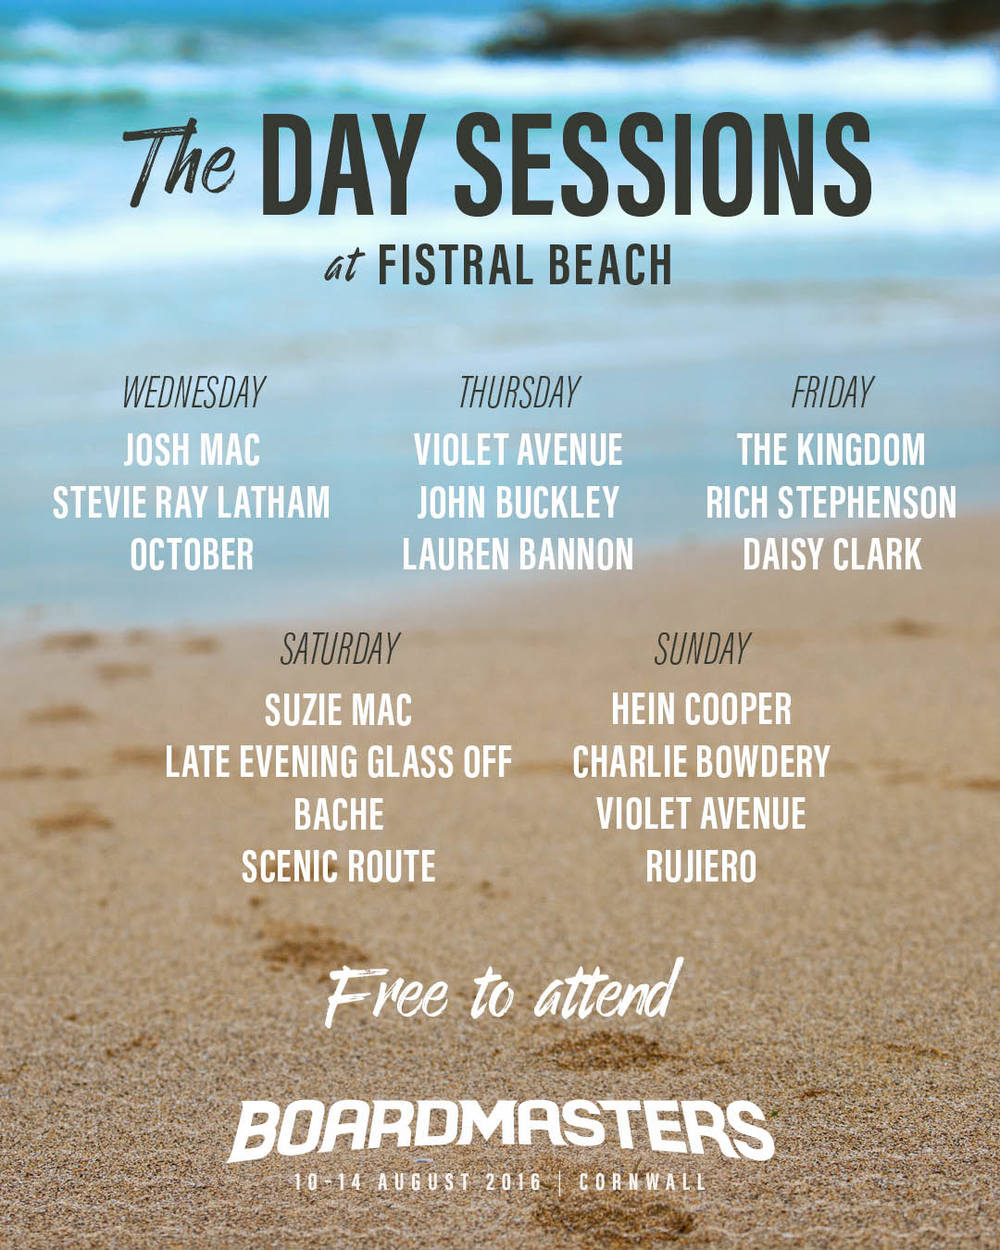 www.boardmasters.com  Can you believe it, my name is on an INTERNATIONAL MUSIC FESTIVAL POSTER!!!!!